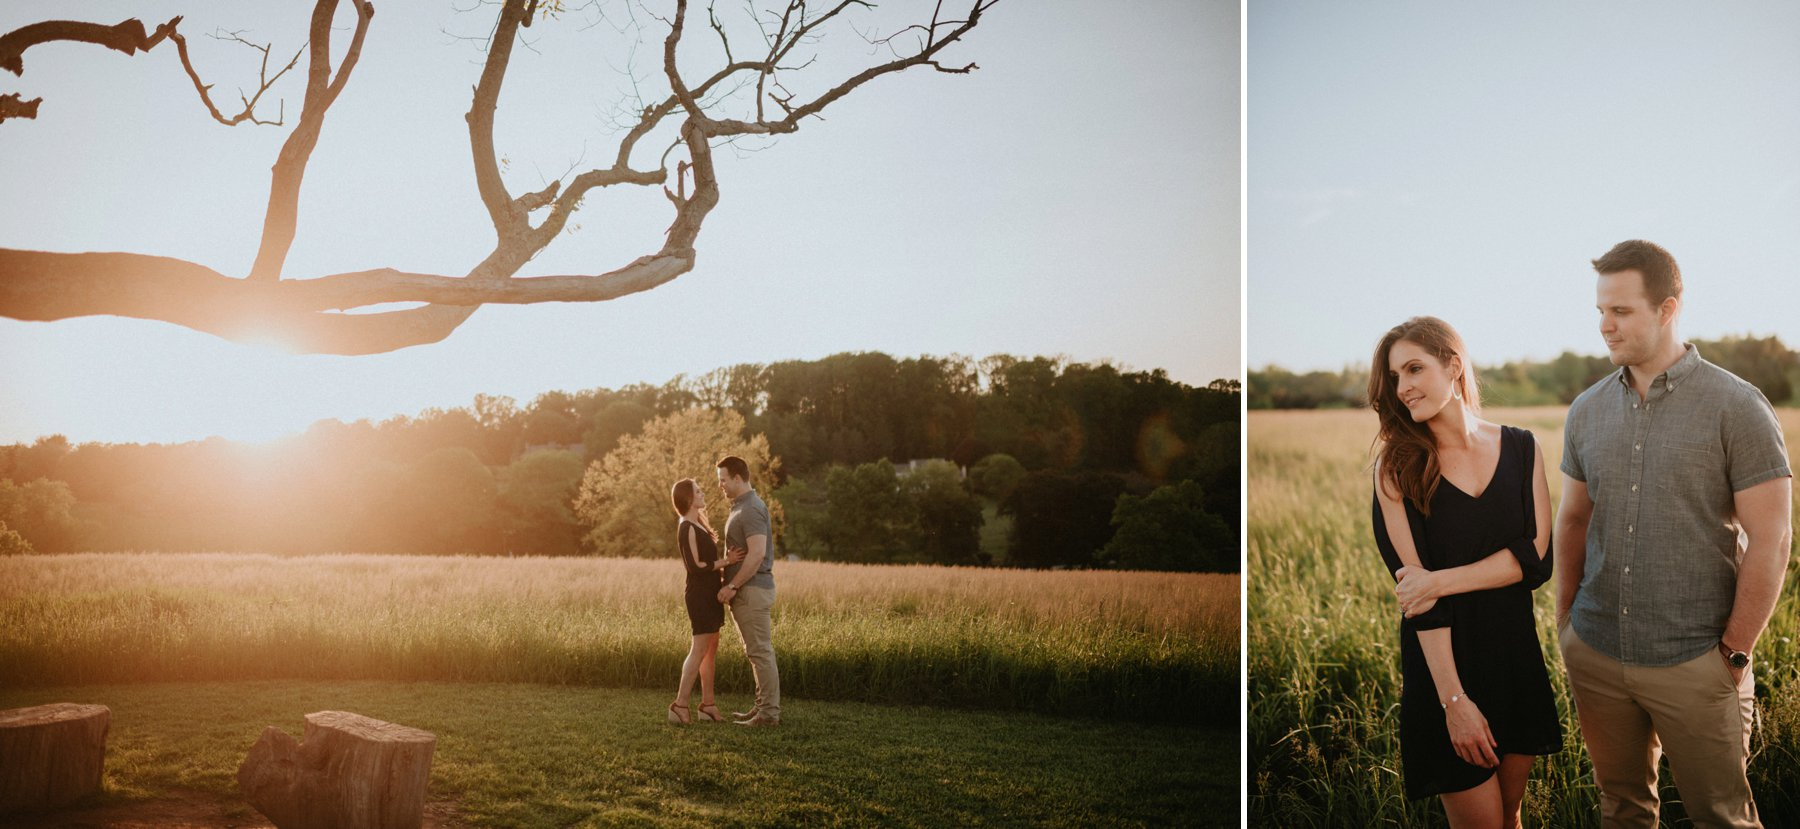 Newtown-square-engagement-session-44.jpg